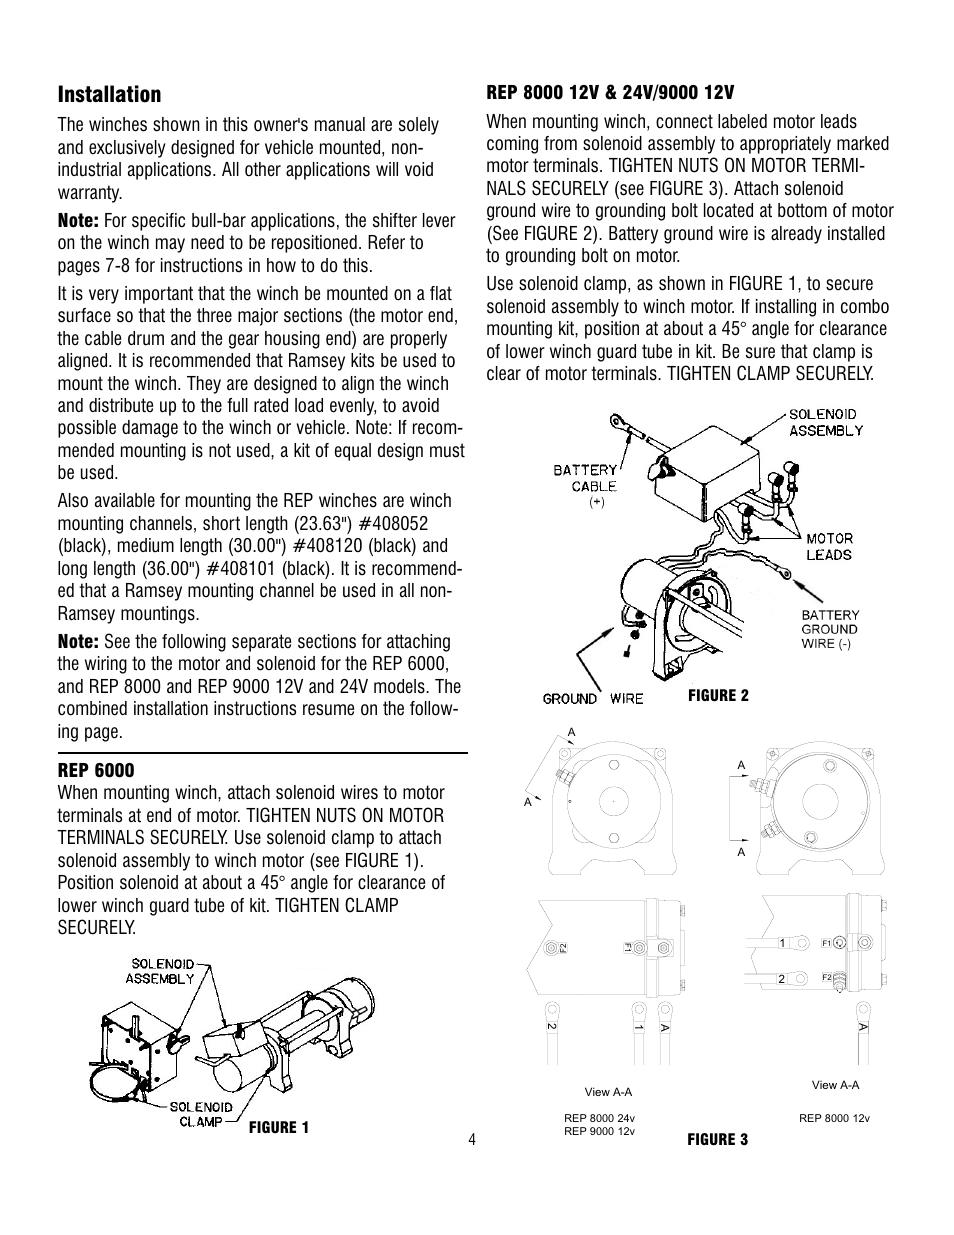 ramsey-winch-wiring-diagram-14 Ramsey Winch Solenoid Wiring Diagram Two on dual 12 volt, to chicago, superwinch atv,